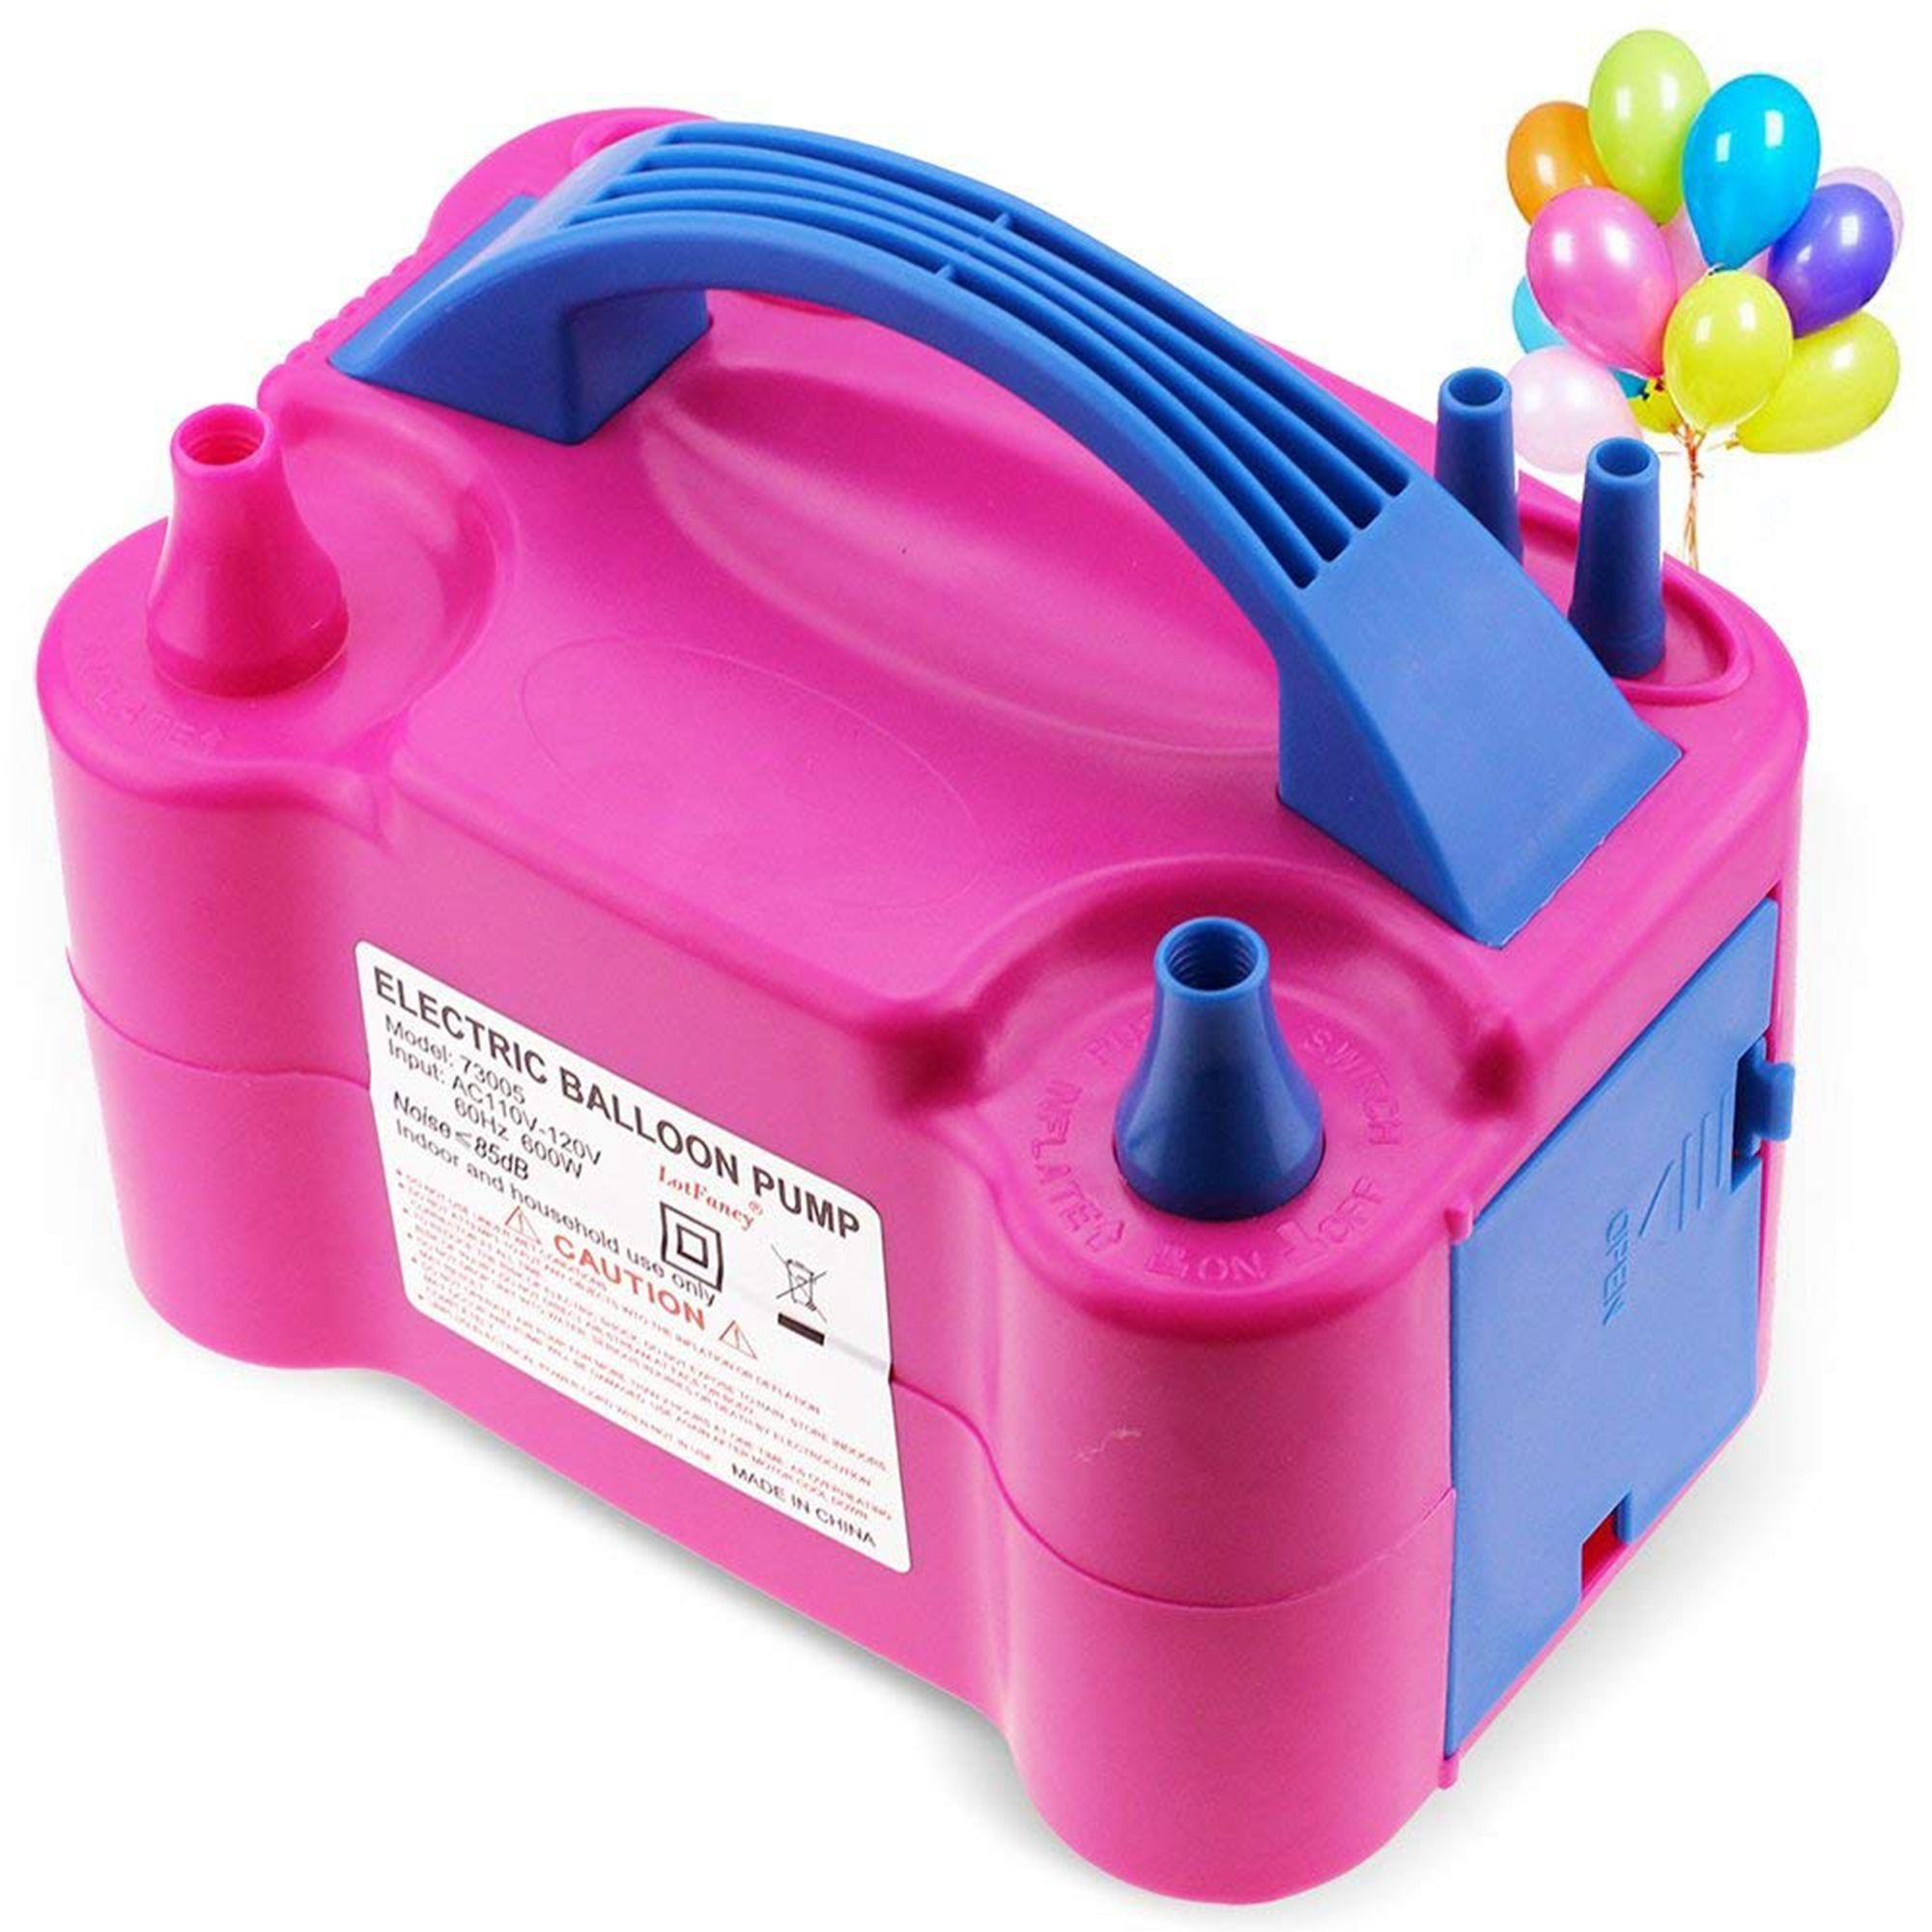 LotFancy Electric Balloon Air Pump - Portable Balloon Inflator for Decoration, Dual Nozzle Blower, 600W, Pink